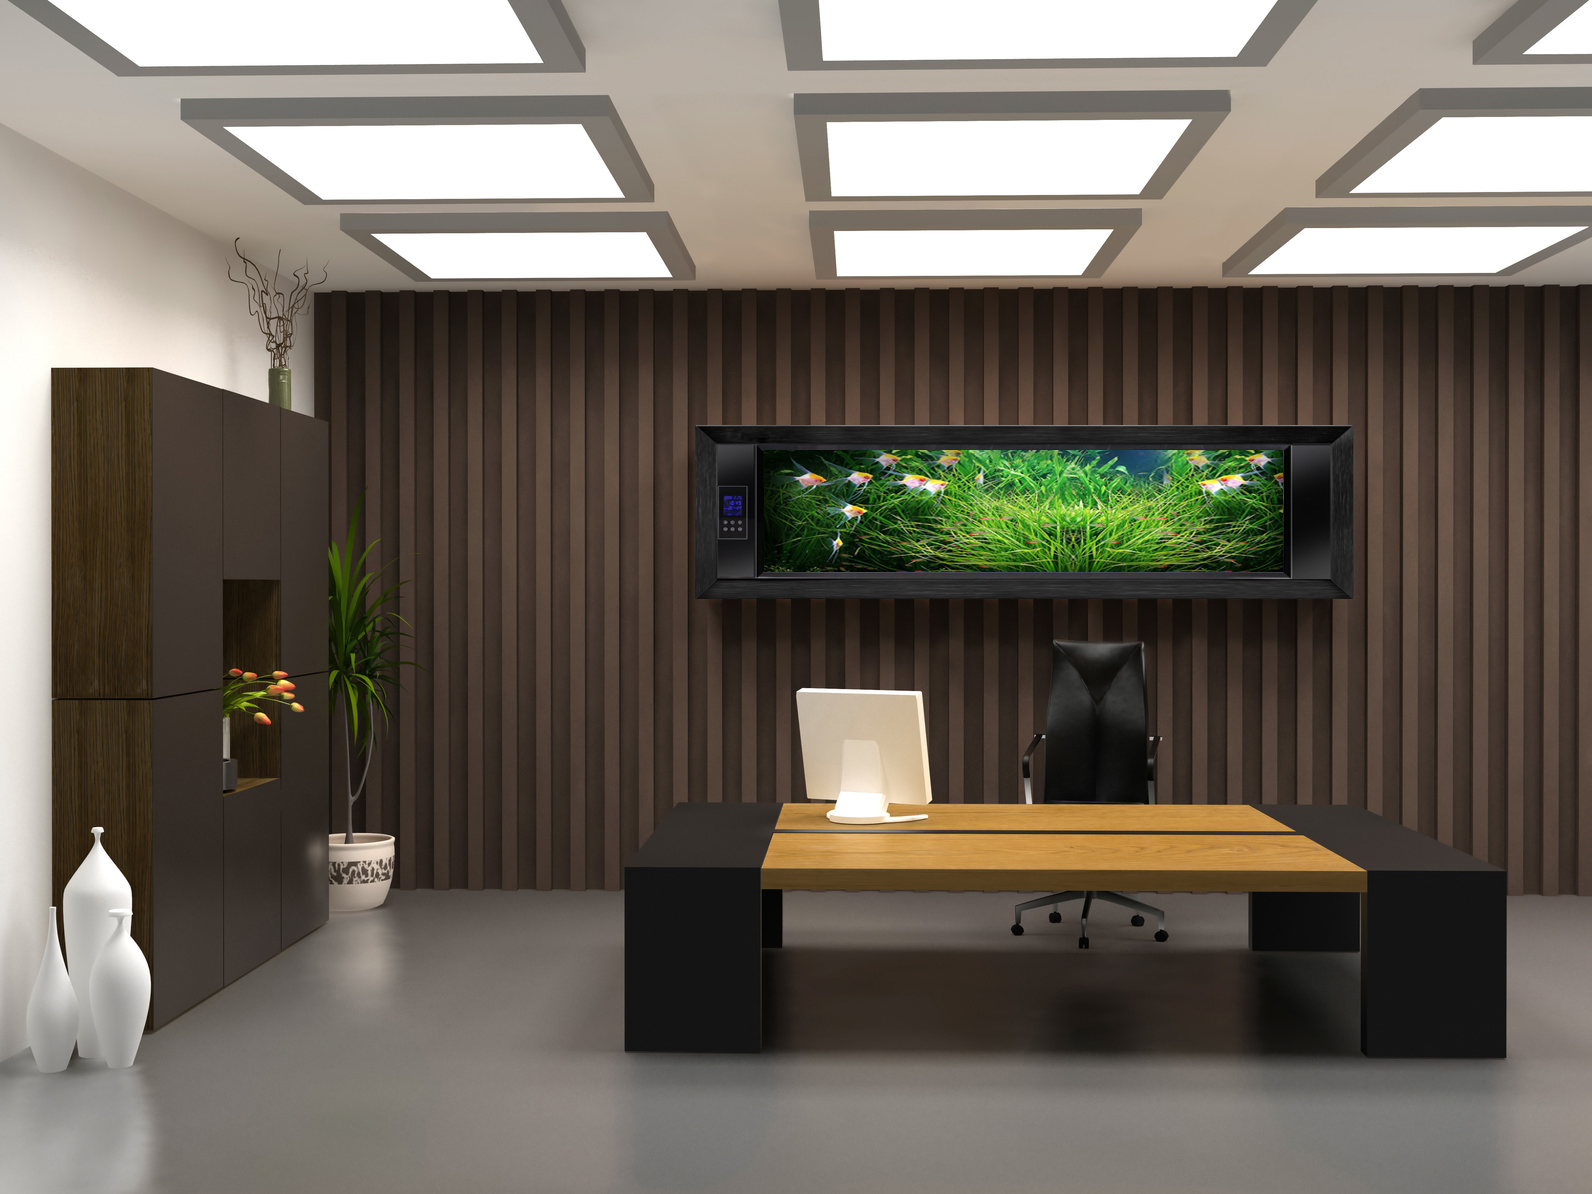 Elegant ceo office design bellisima for Modern office design ideas